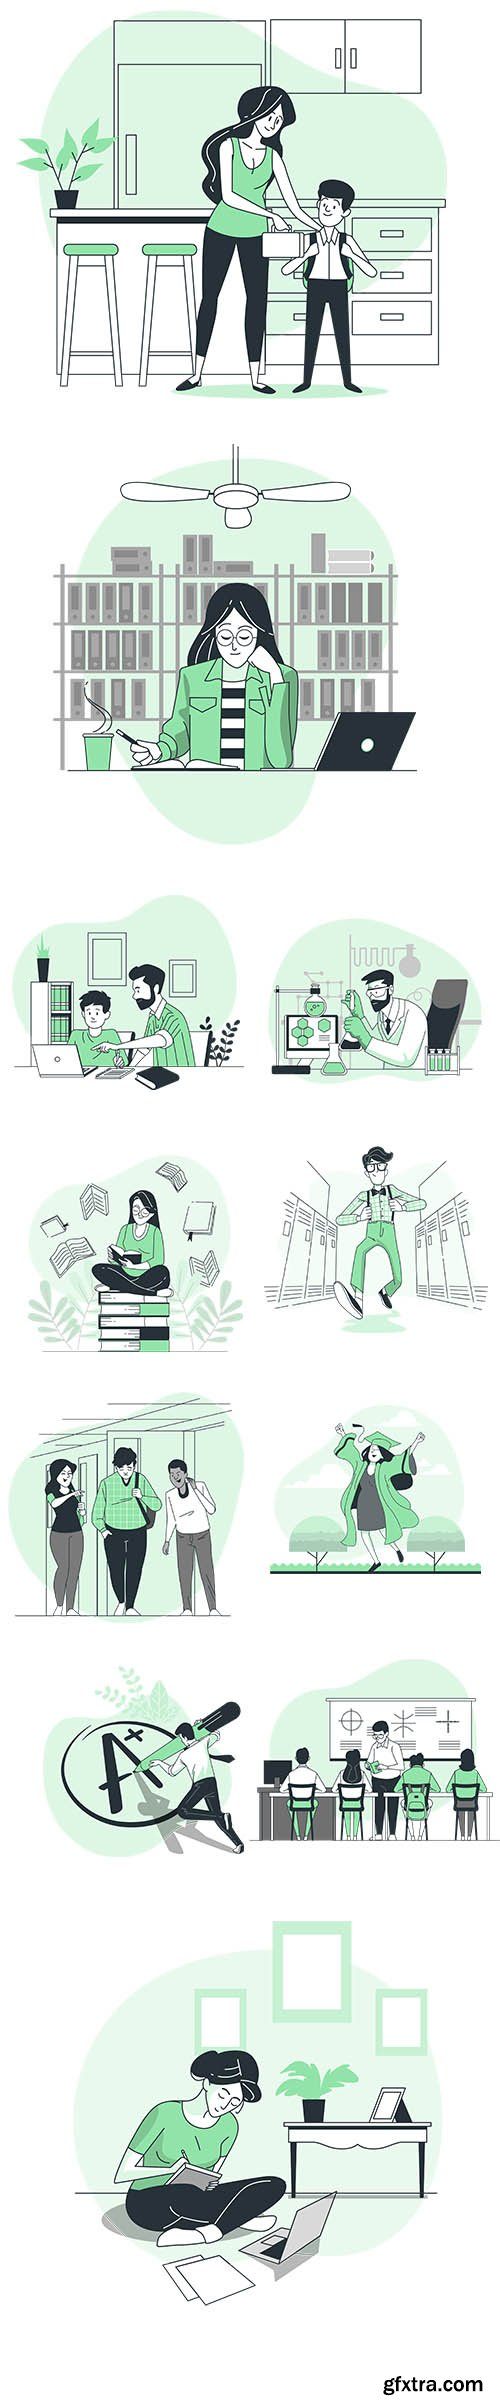 Vector People Live Situation Illustrations Education Concept Vol 8